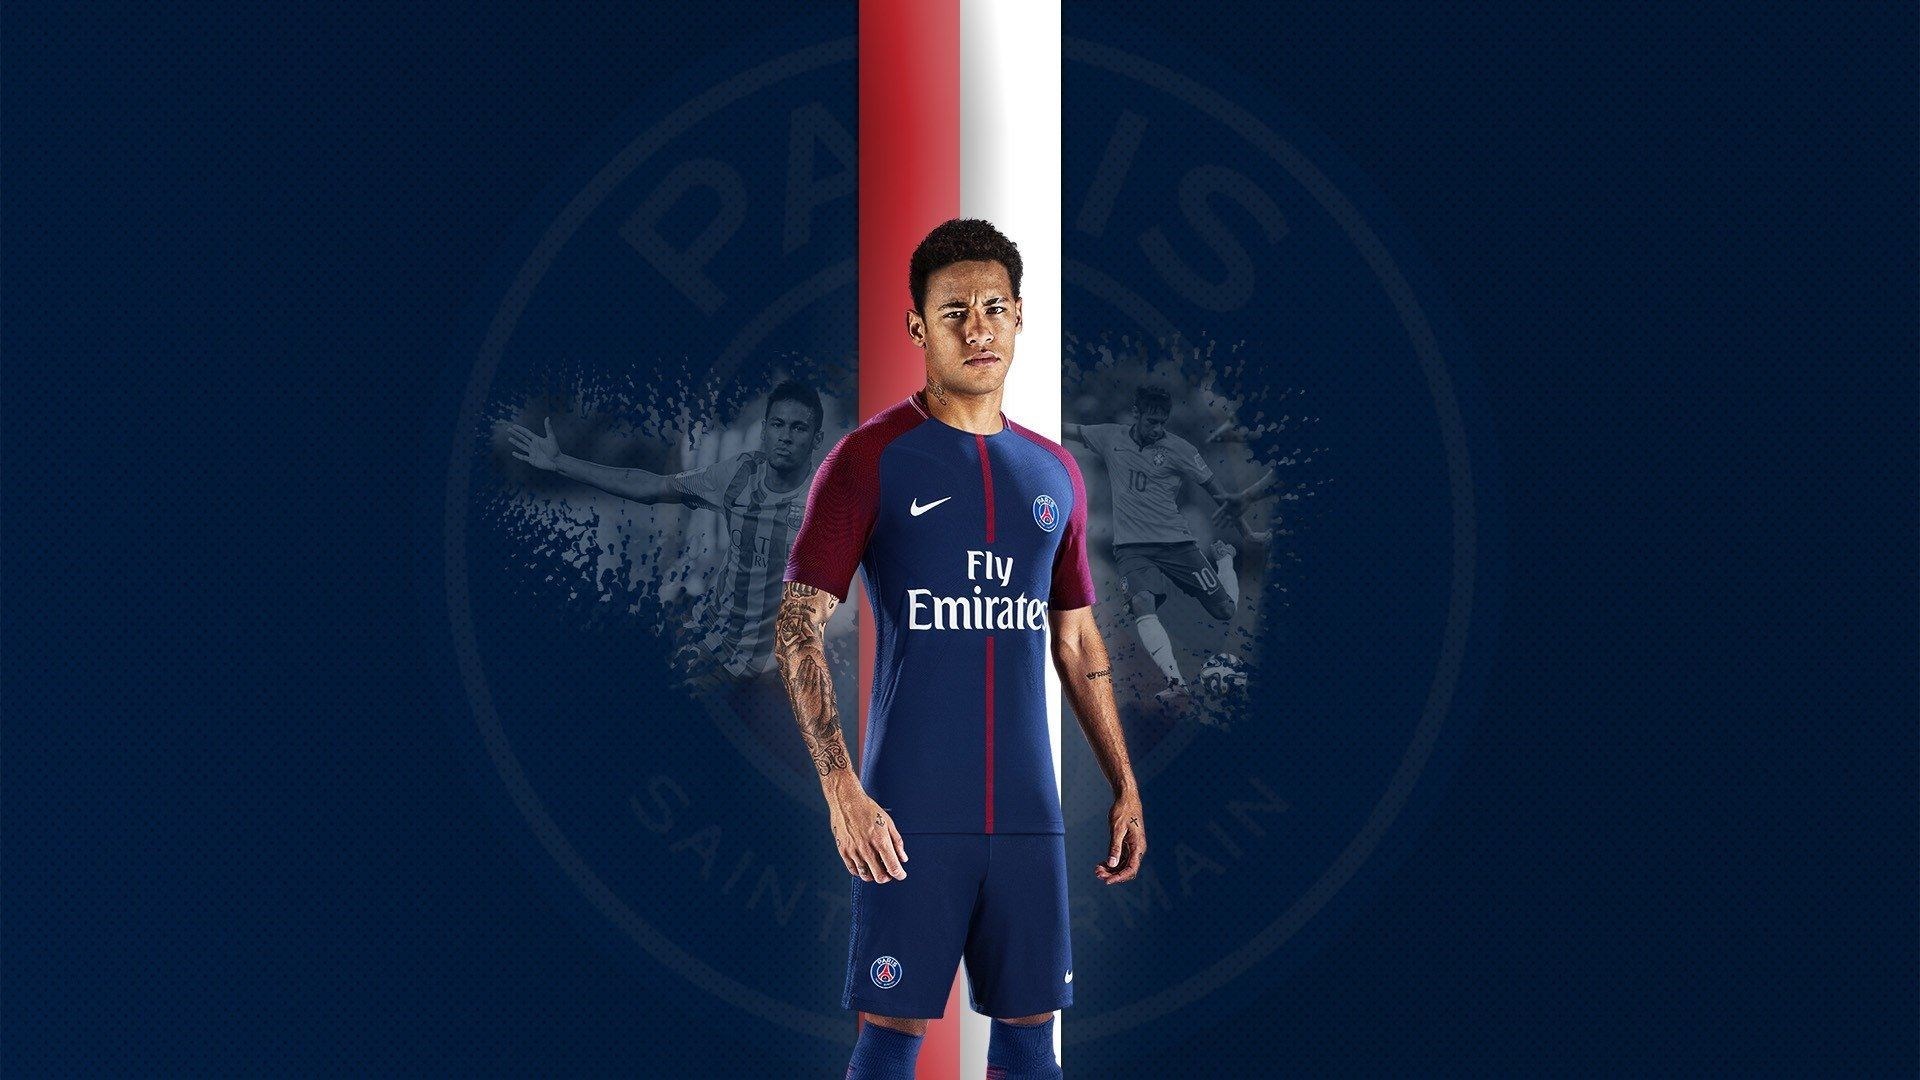 Psg Wallpapers Top Free Psg Backgrounds Wallpaperaccess